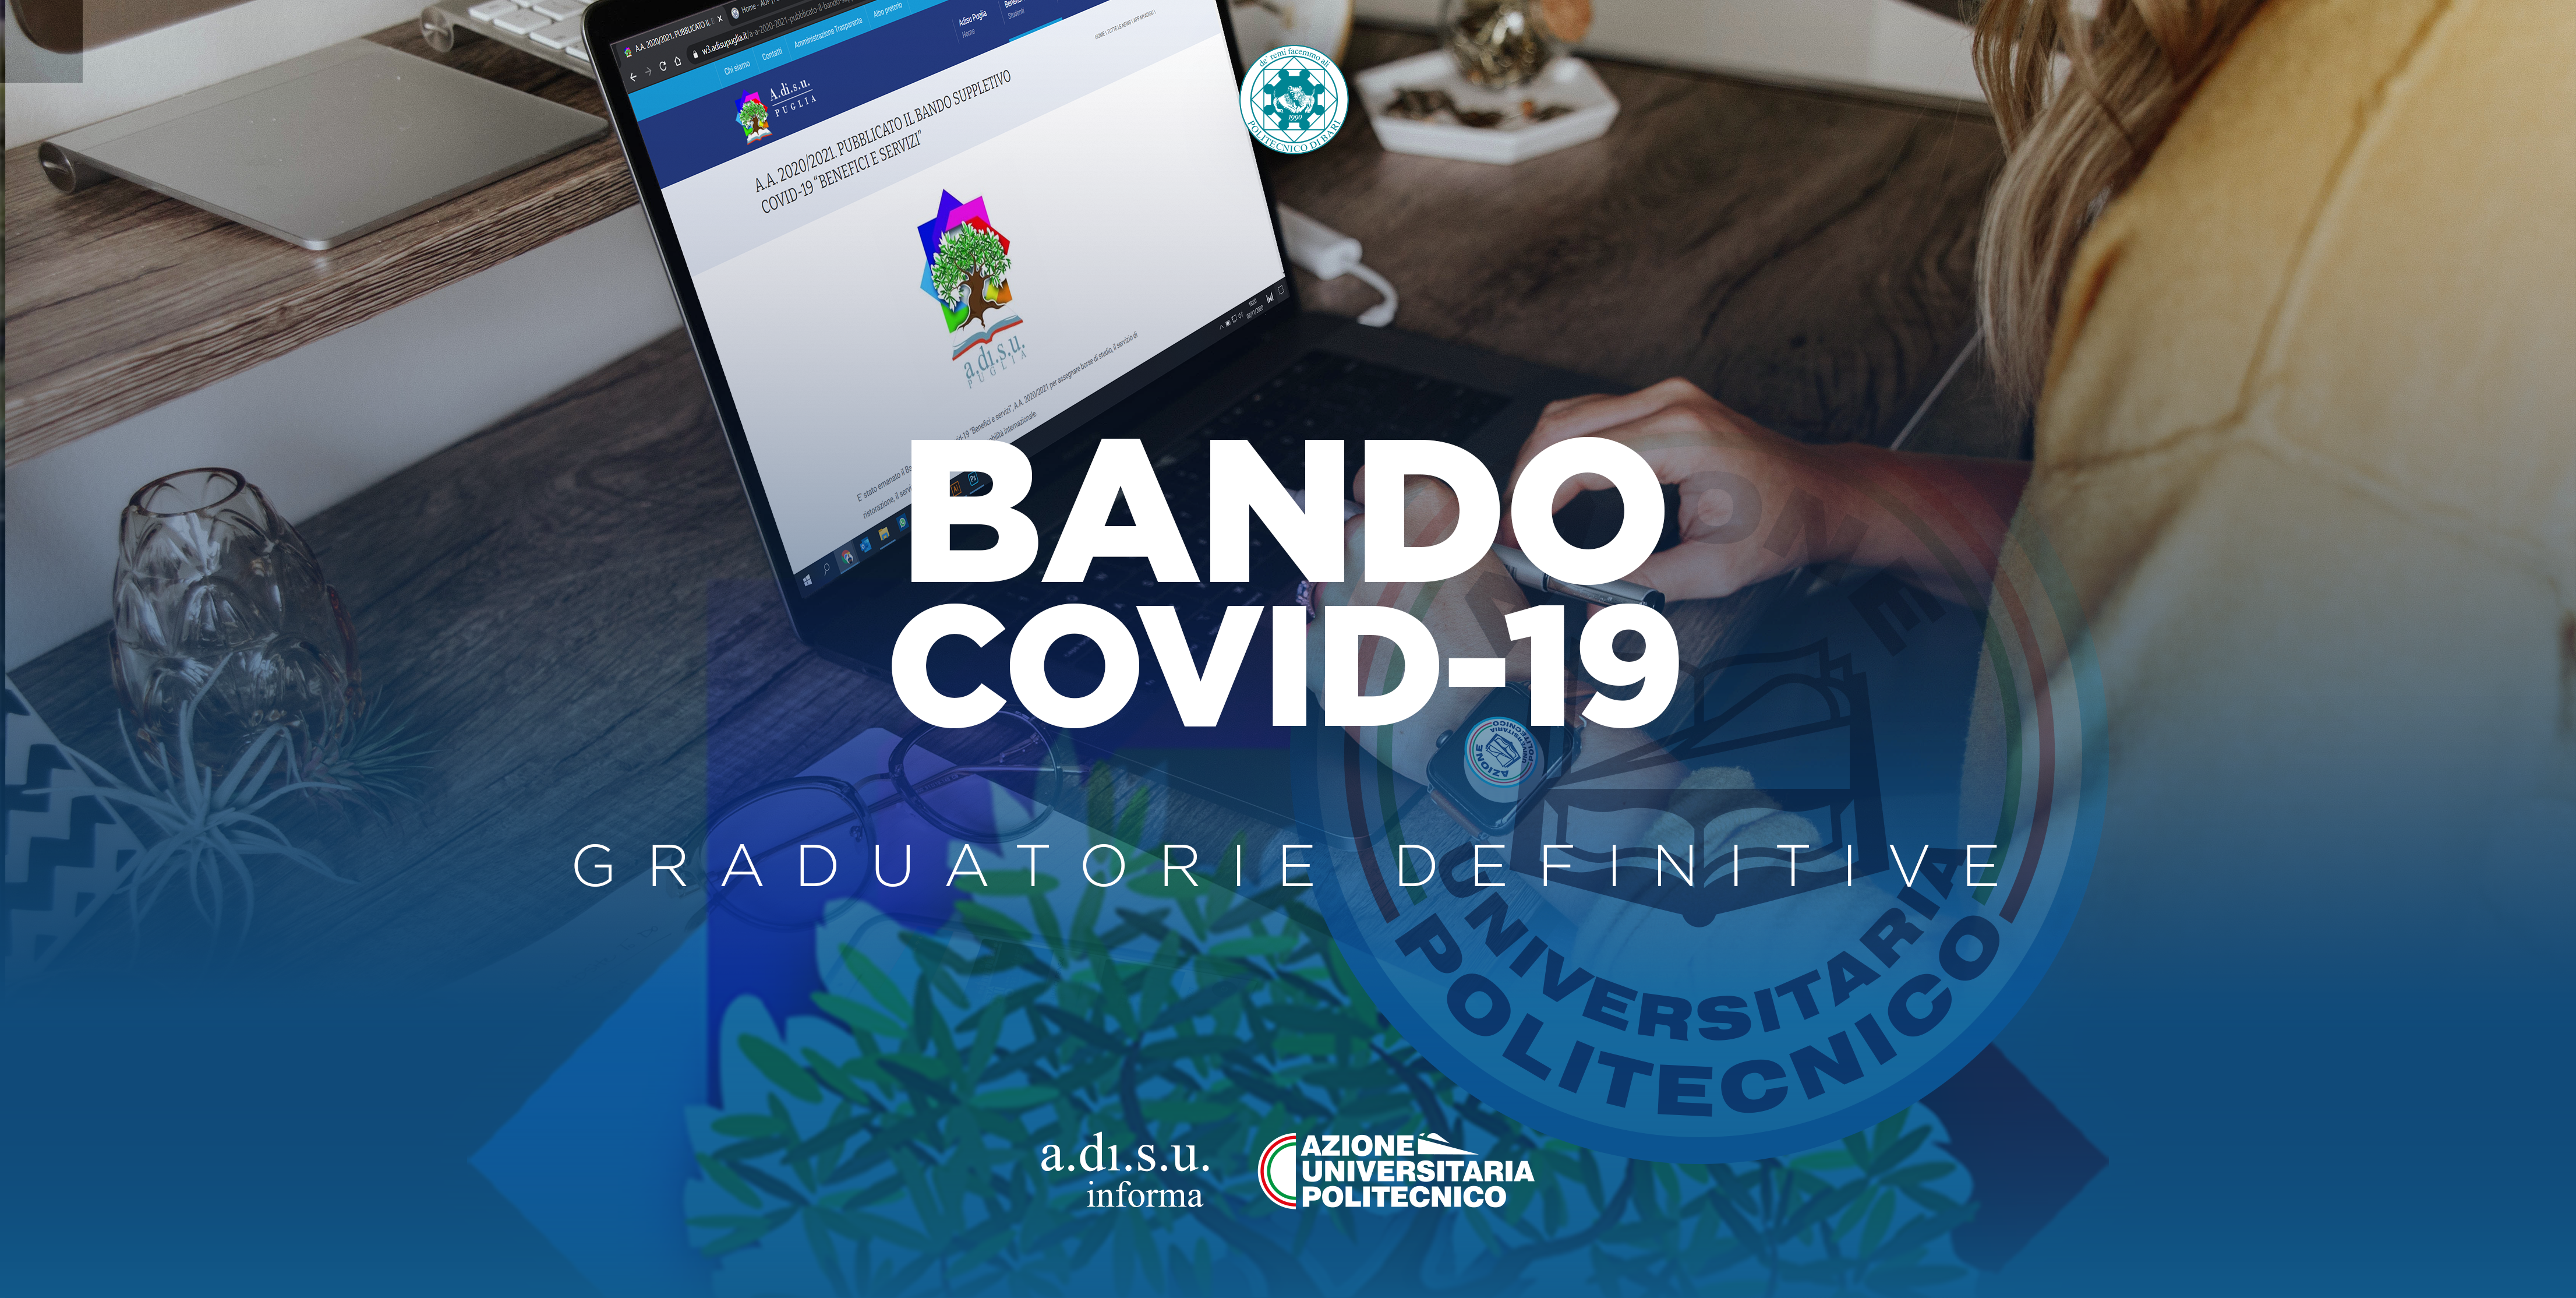 BANDO SUPPLETIVO COVID-19 - GRADUATORIE DEFINITIVE